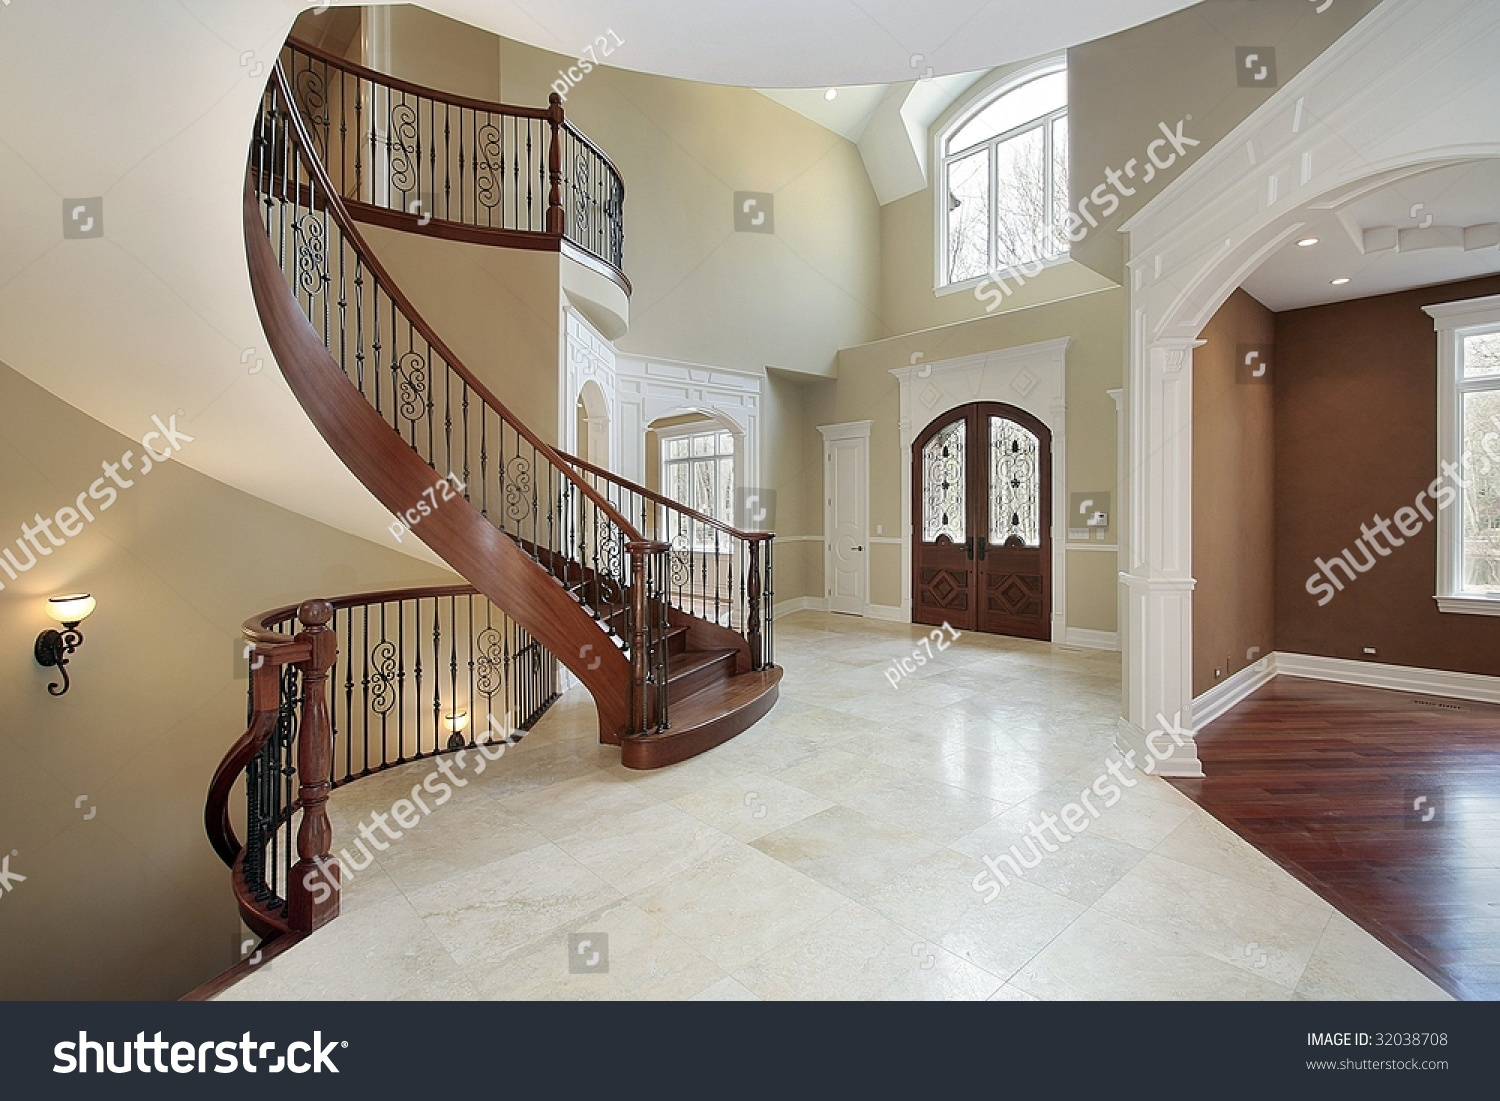 Foyer Curved Staircase : Foyer with curved staircase stock photo